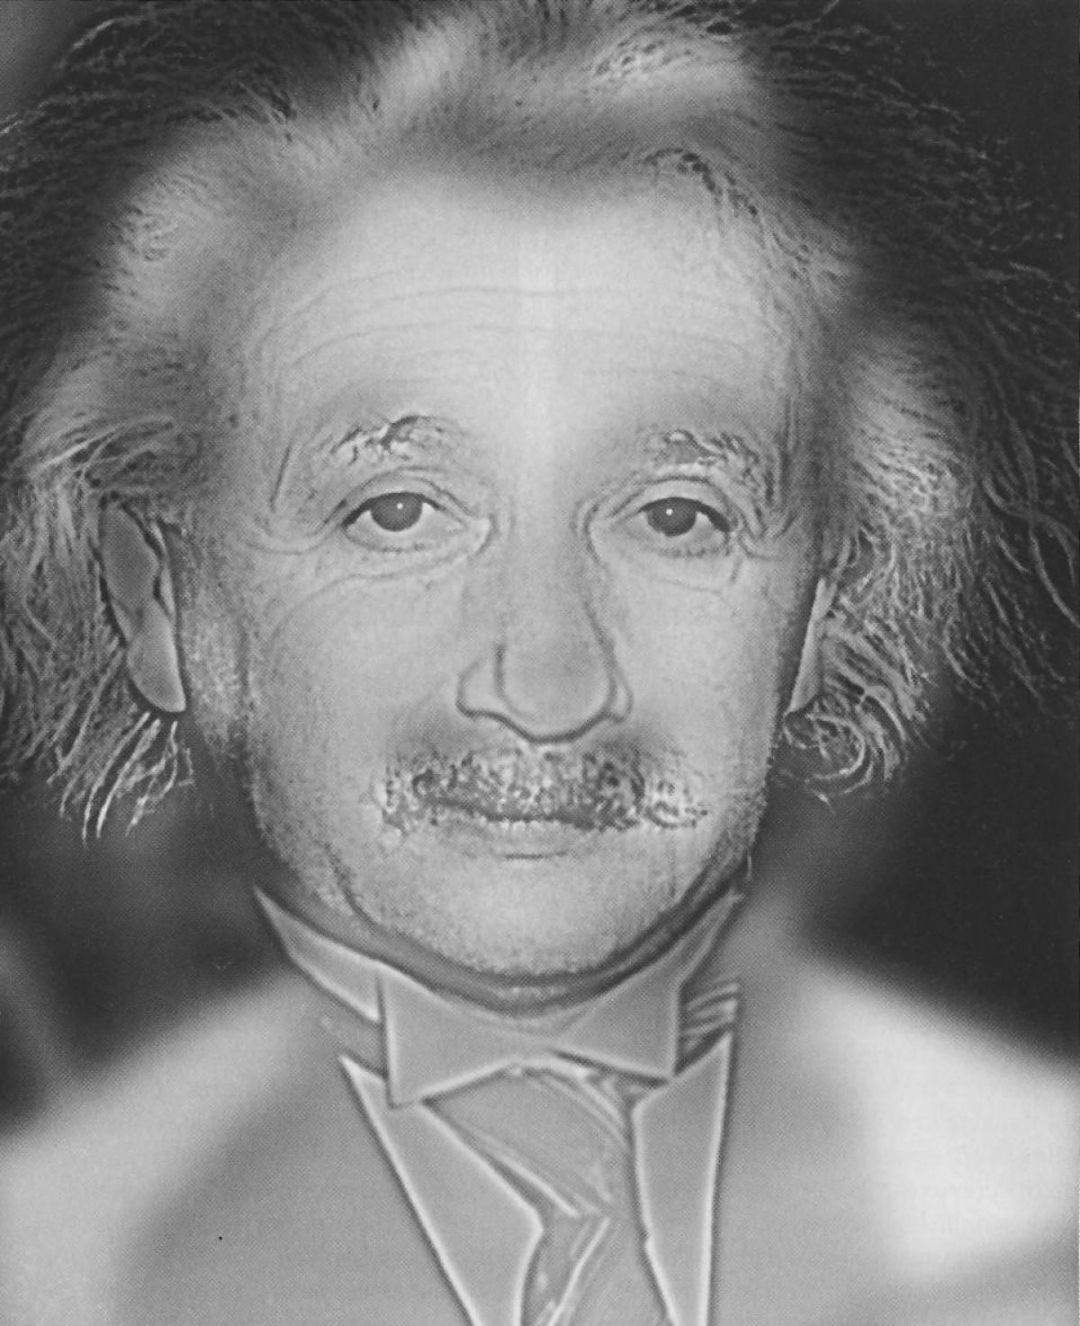 When you look at the image above, whose face do you see? At normal screen viewing distance you should see the face of the great scientist Albert Einstein. Now squint your eyes or take a few steps back grom the image. Does a certain Hollywood personality pop into view? The Marylin Einstein hybrid image was created by Dr. Aude Oliva for the March 31st 2007 issue of New Scientist magazine.